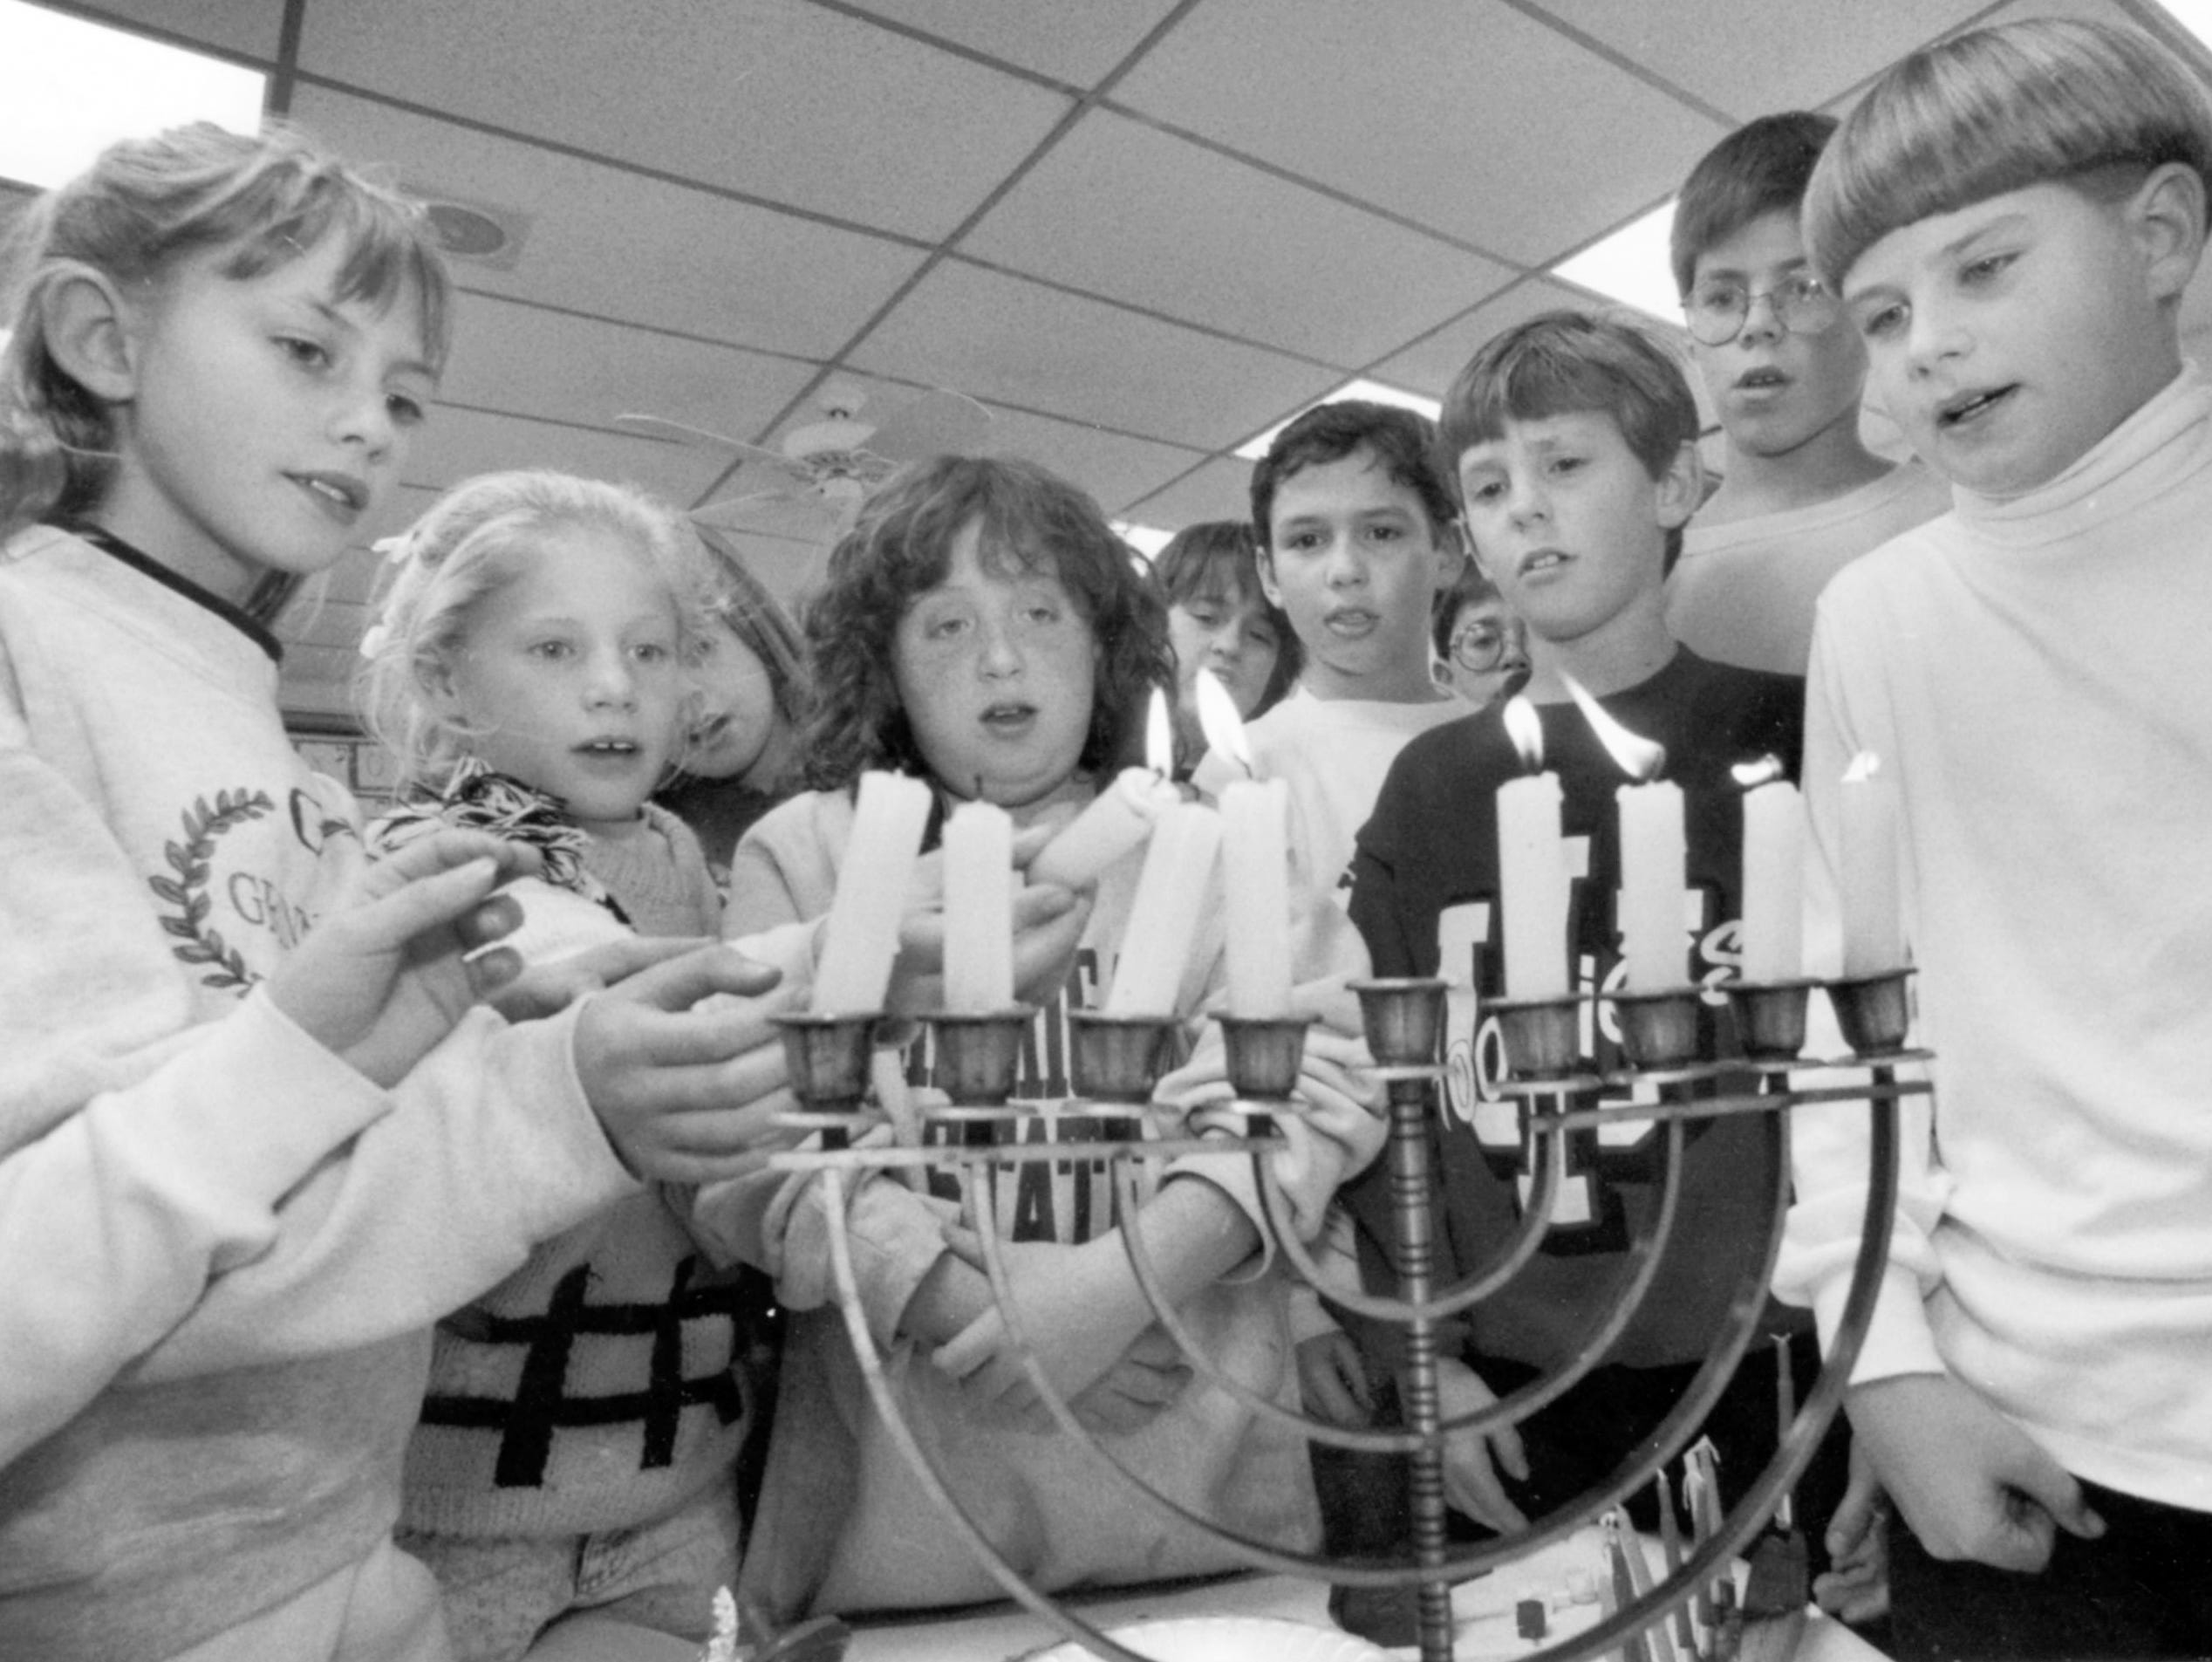 Pupils in Rachel Englemayer's class at the Board of Jewish Education practice lighting the menorah while saying the Hanukkah prayer on Dec. 26, 1991.